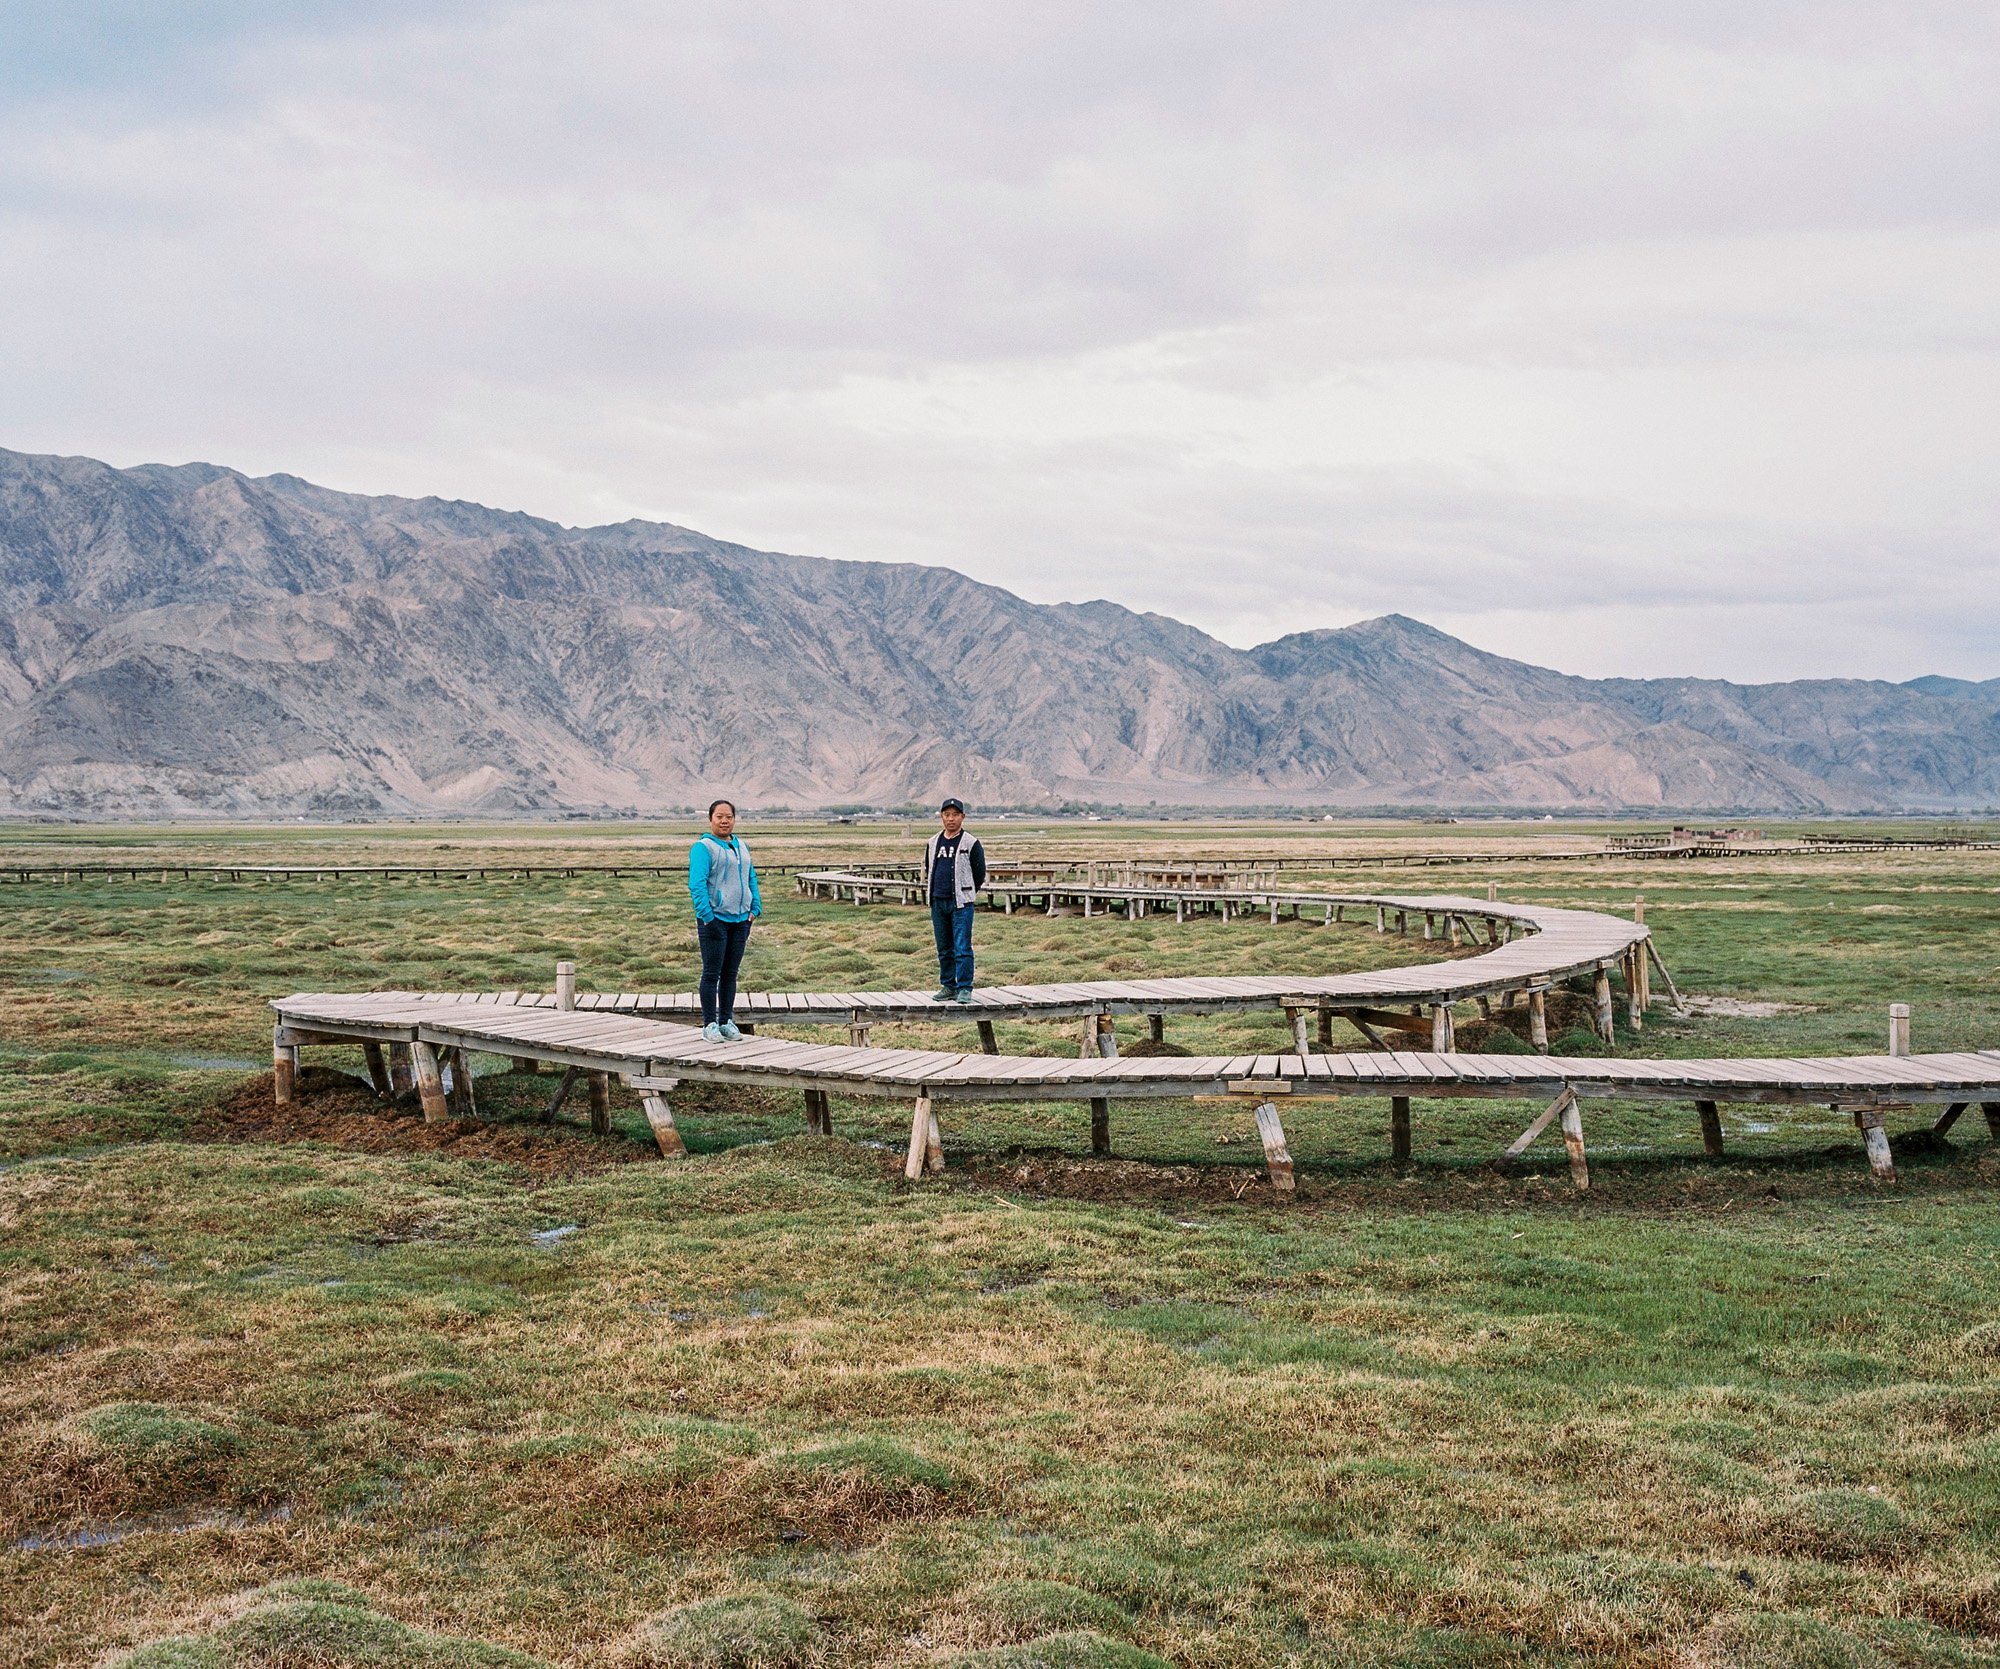 Stunning Images of China's Xinjiang Region by Patrick Wack